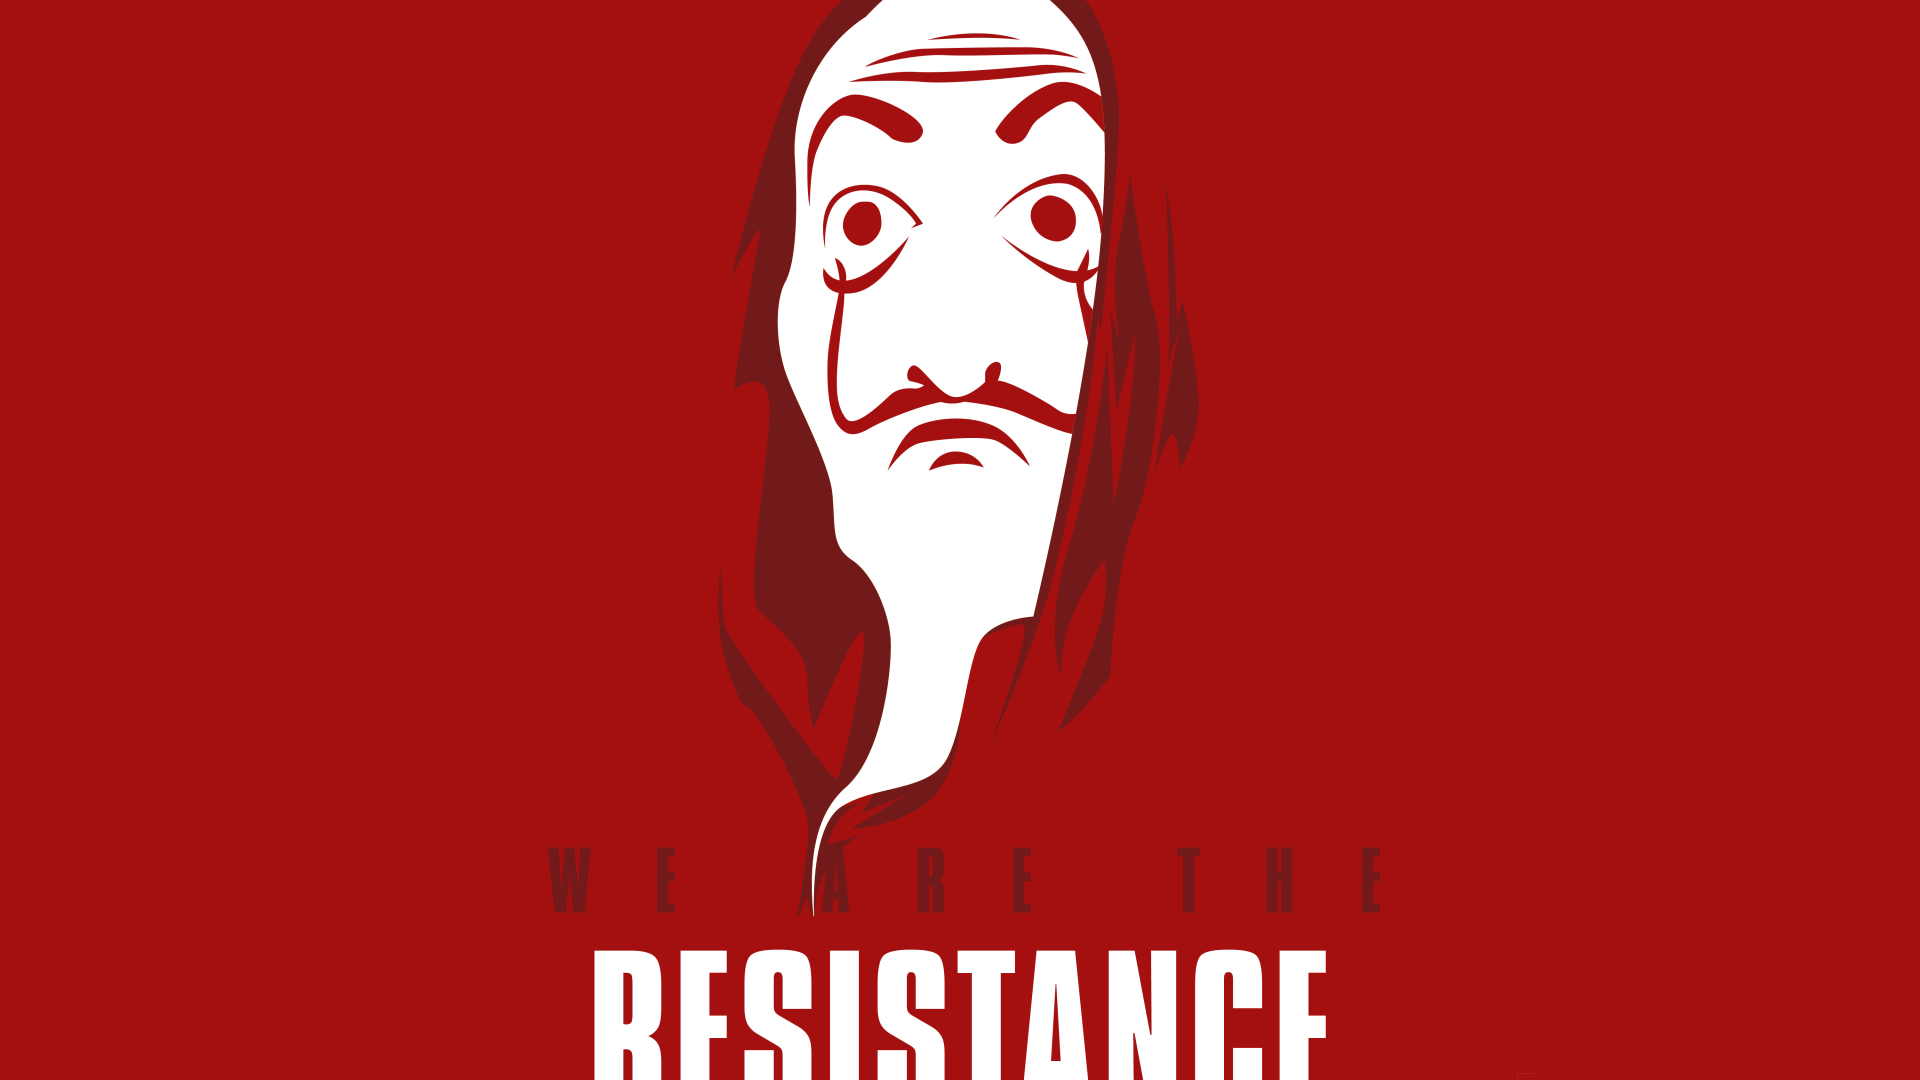 1920x1080 We Are The Resistance 1080p Laptop Full Hd Wallpaper Hd